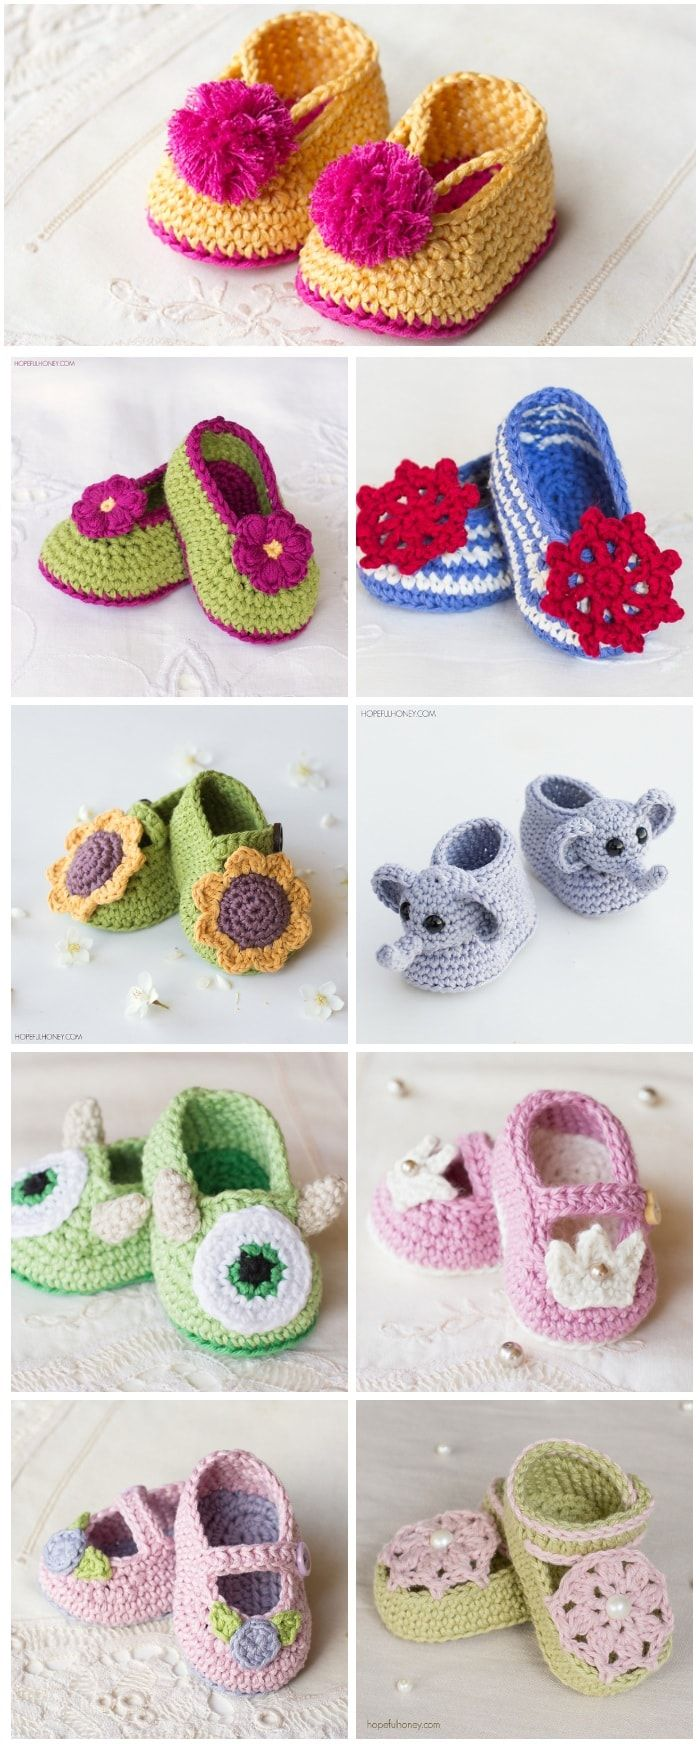 25 Adorable Free Crochet Baby Booties | Zapatillas | Pinterest ...